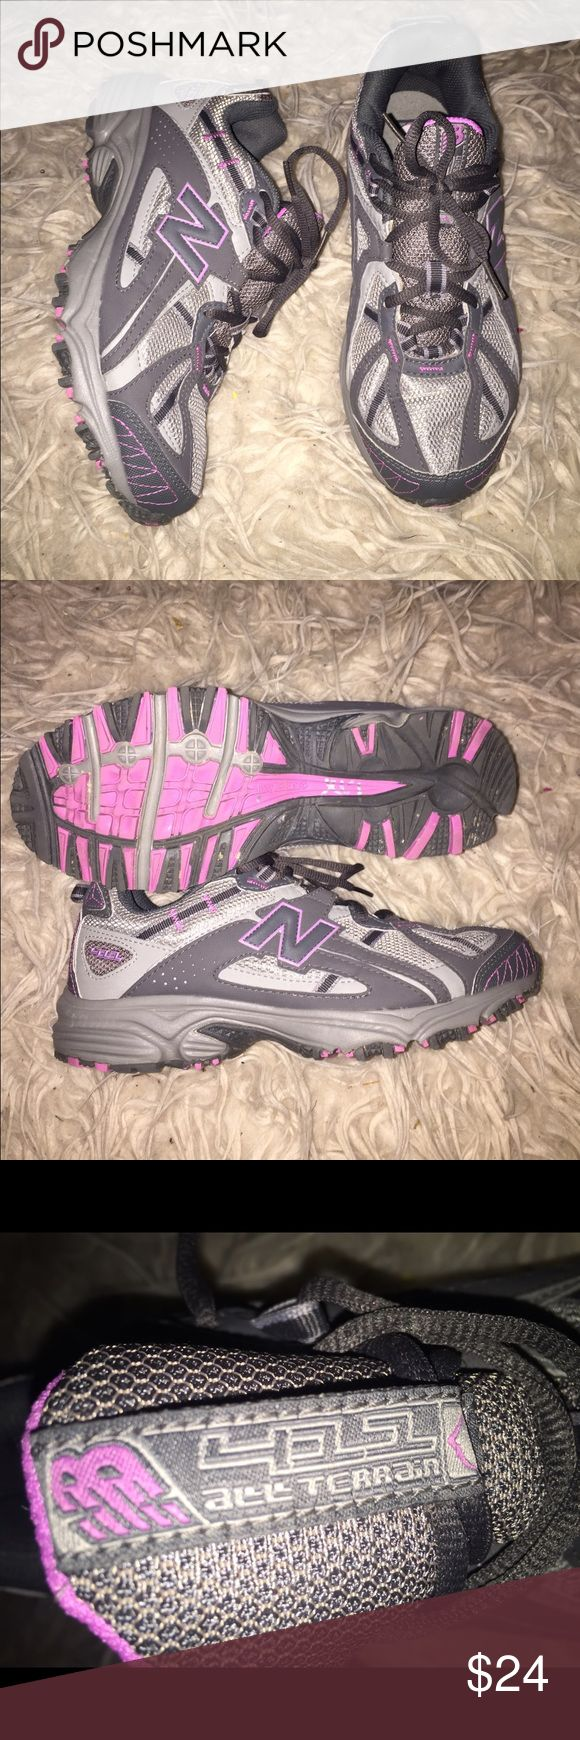 New Balance (All Terrain) Cross trainer New balance tennis shoes/sneakers. Gray with pink accent. Cross trainer / All terrain shoe. New Balance Shoes Athletic Shoes